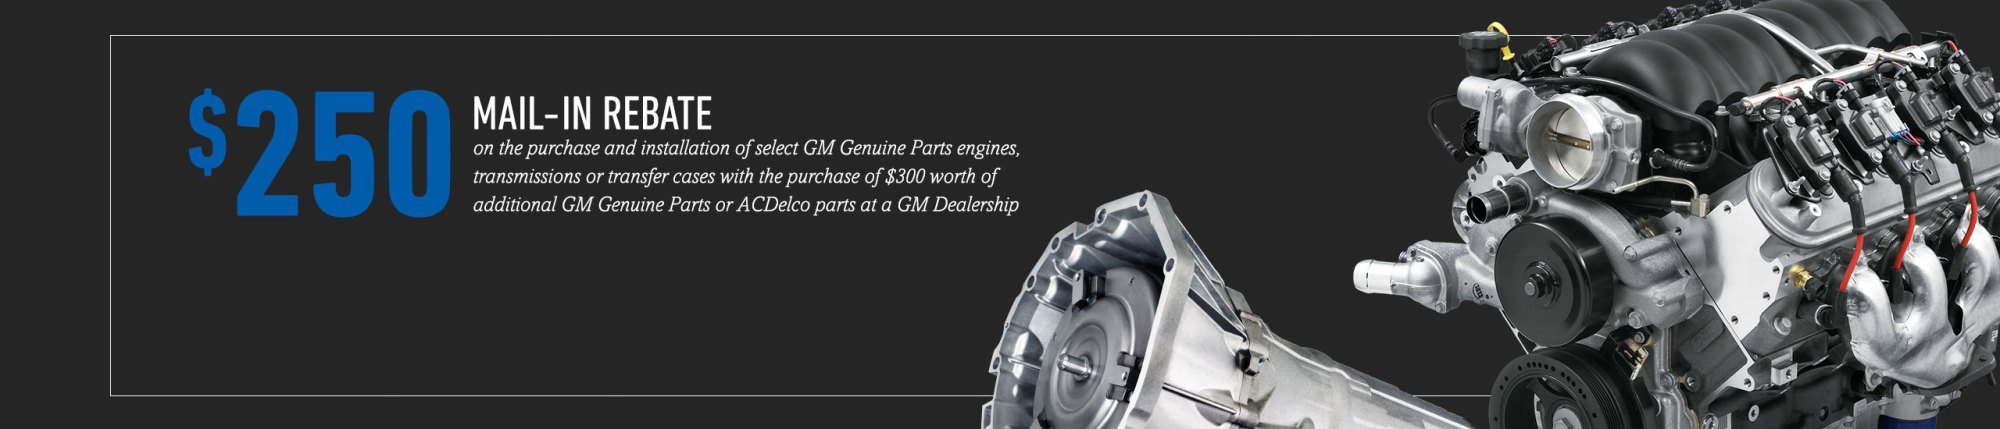 hight resolution of  250mail in rebate on the purchase and installation of select engines transmissions or